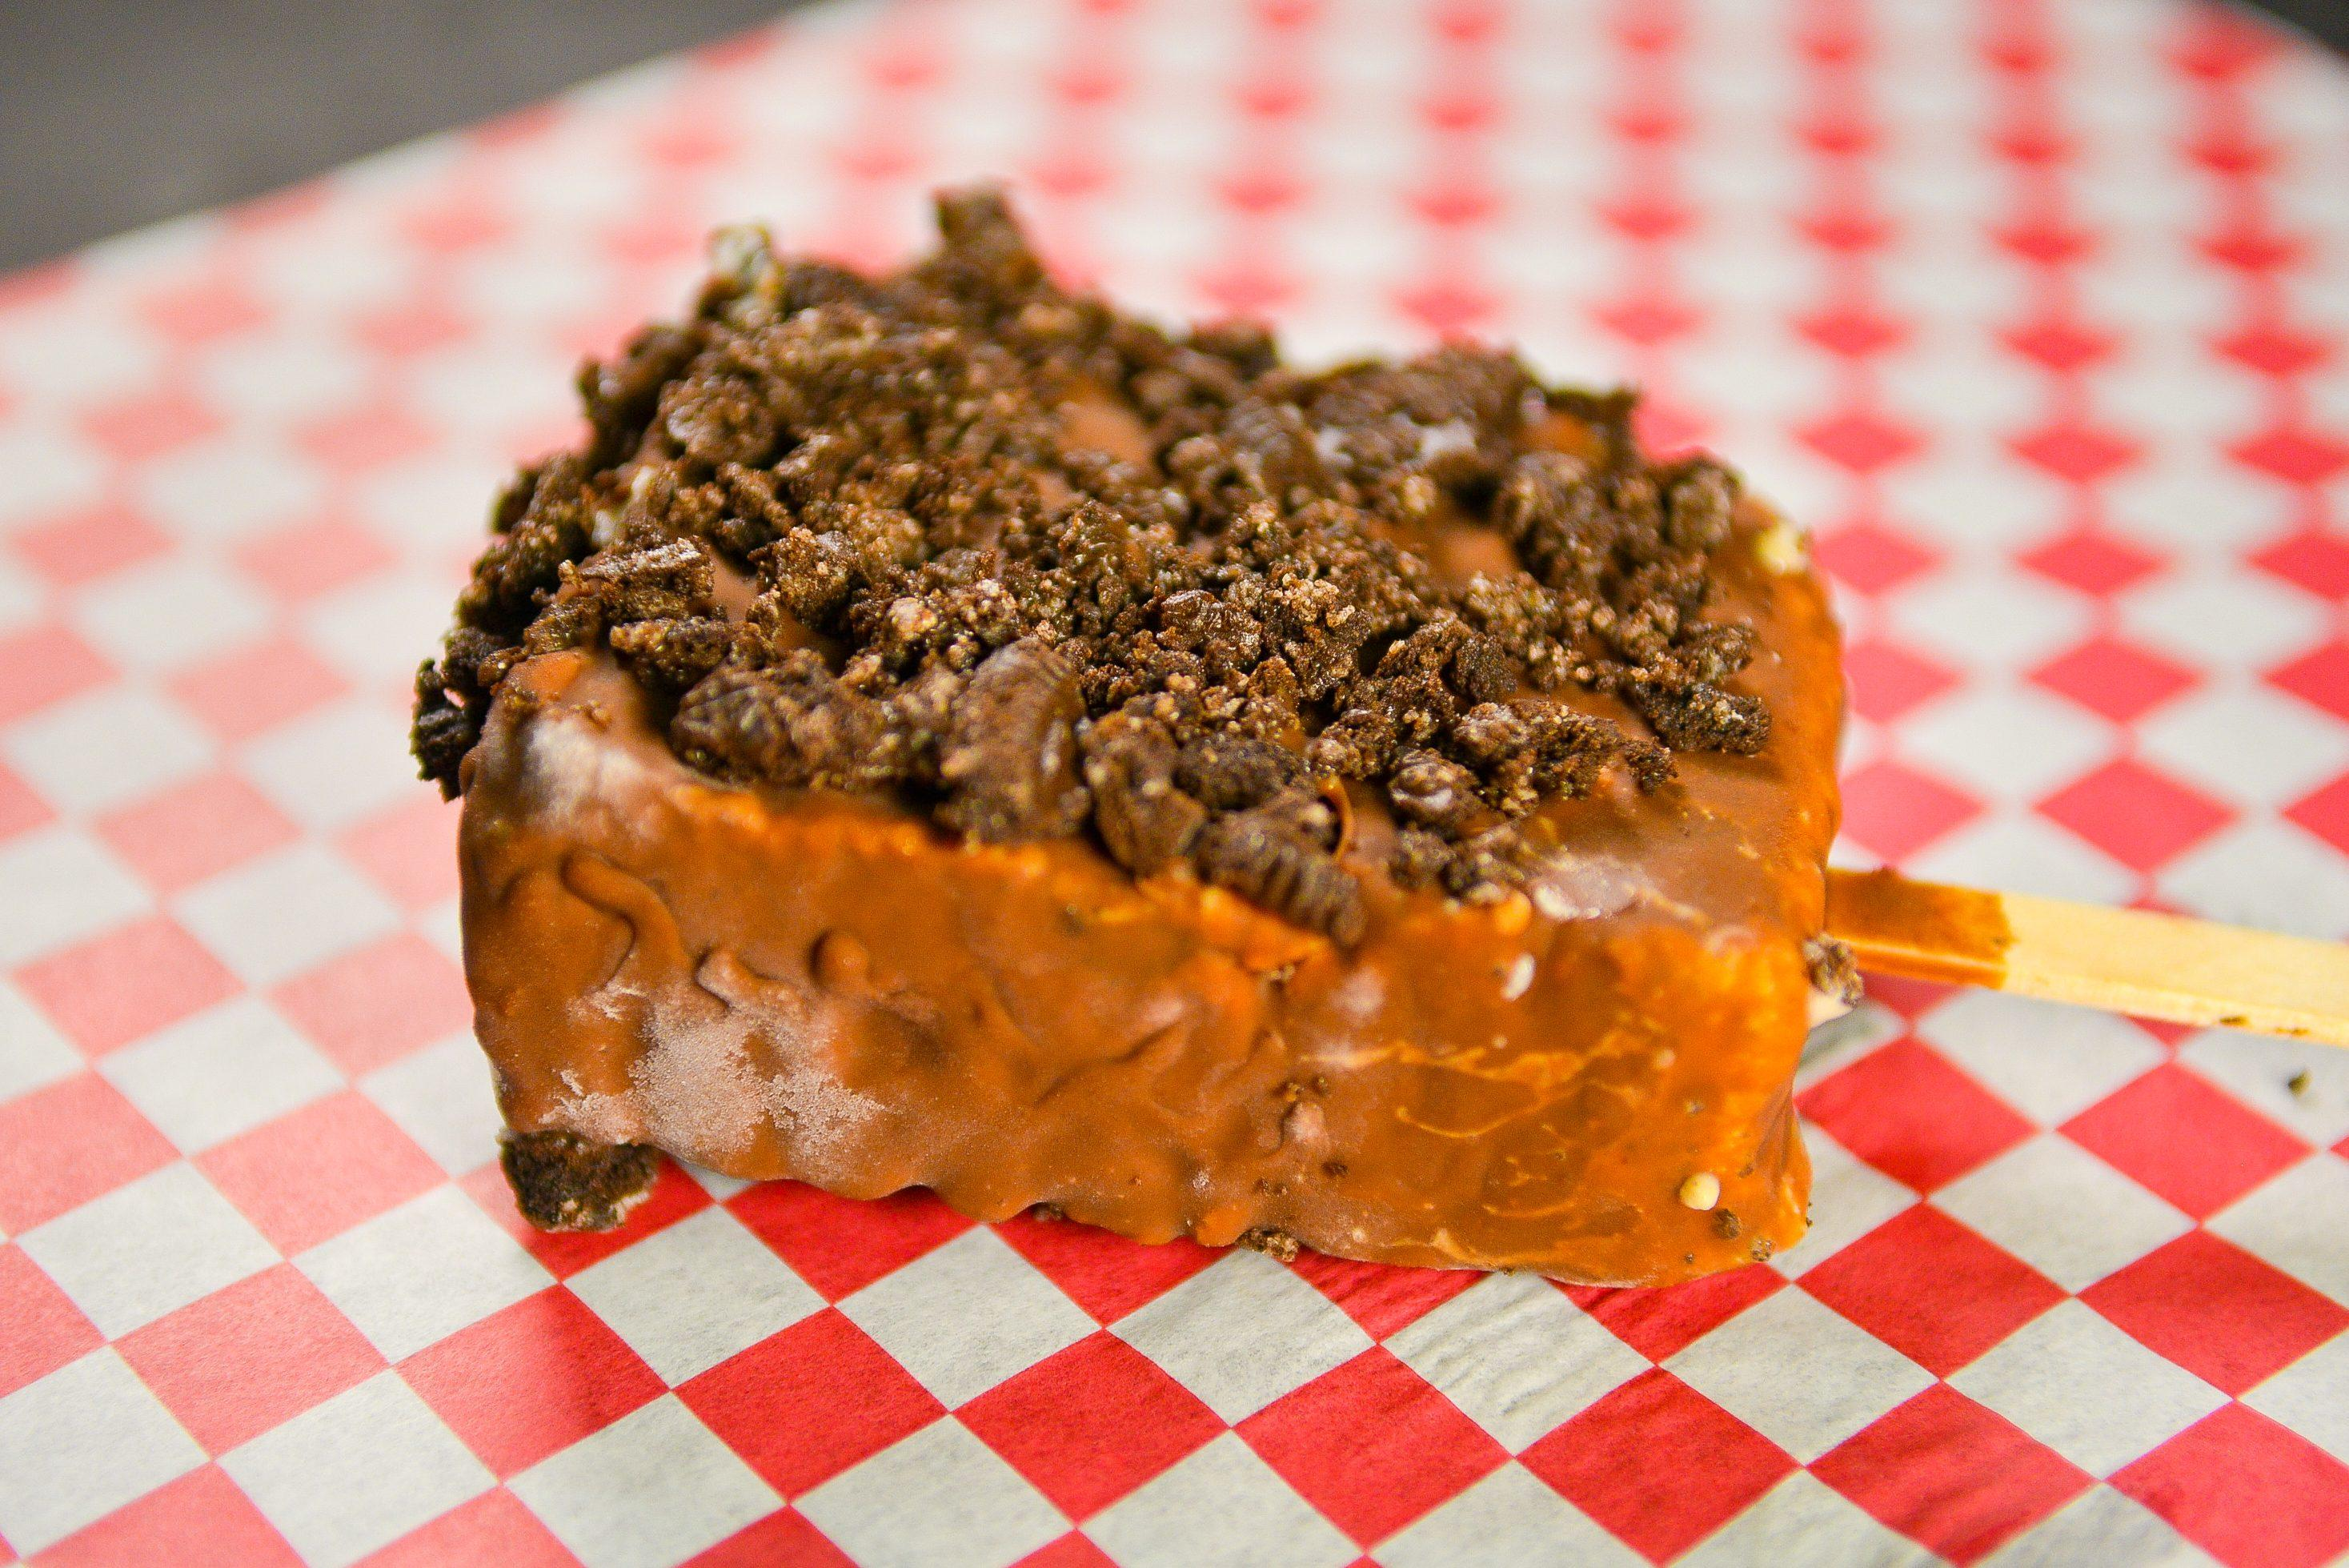 Check out the value priced foods at the Fair, like the Cookies and Cream Wonder Bar!